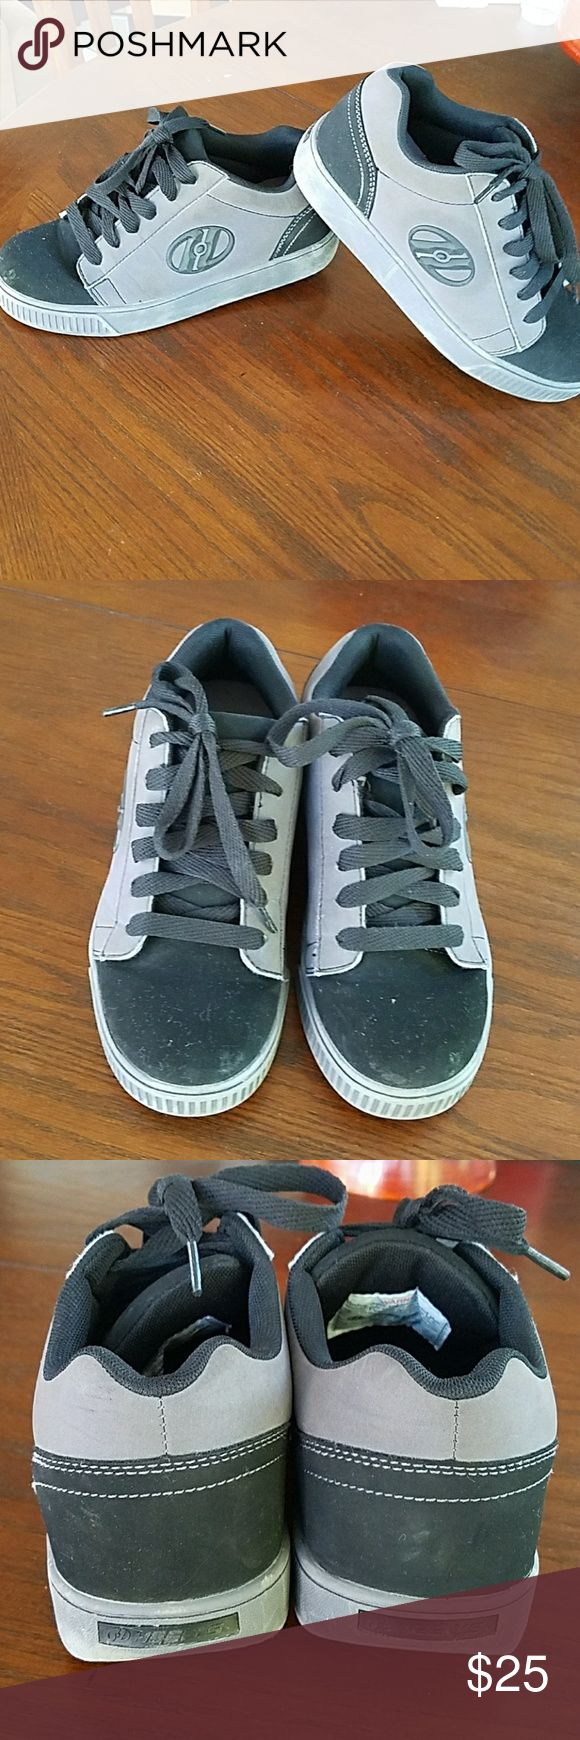 Heelys, youth skate shoes Heelys brand, youth sneakers skate shoes, used in great condition, black & charcoal gray, comes with all attachments (see pic), size 5 youth. Heeleys Shoes Sneakers